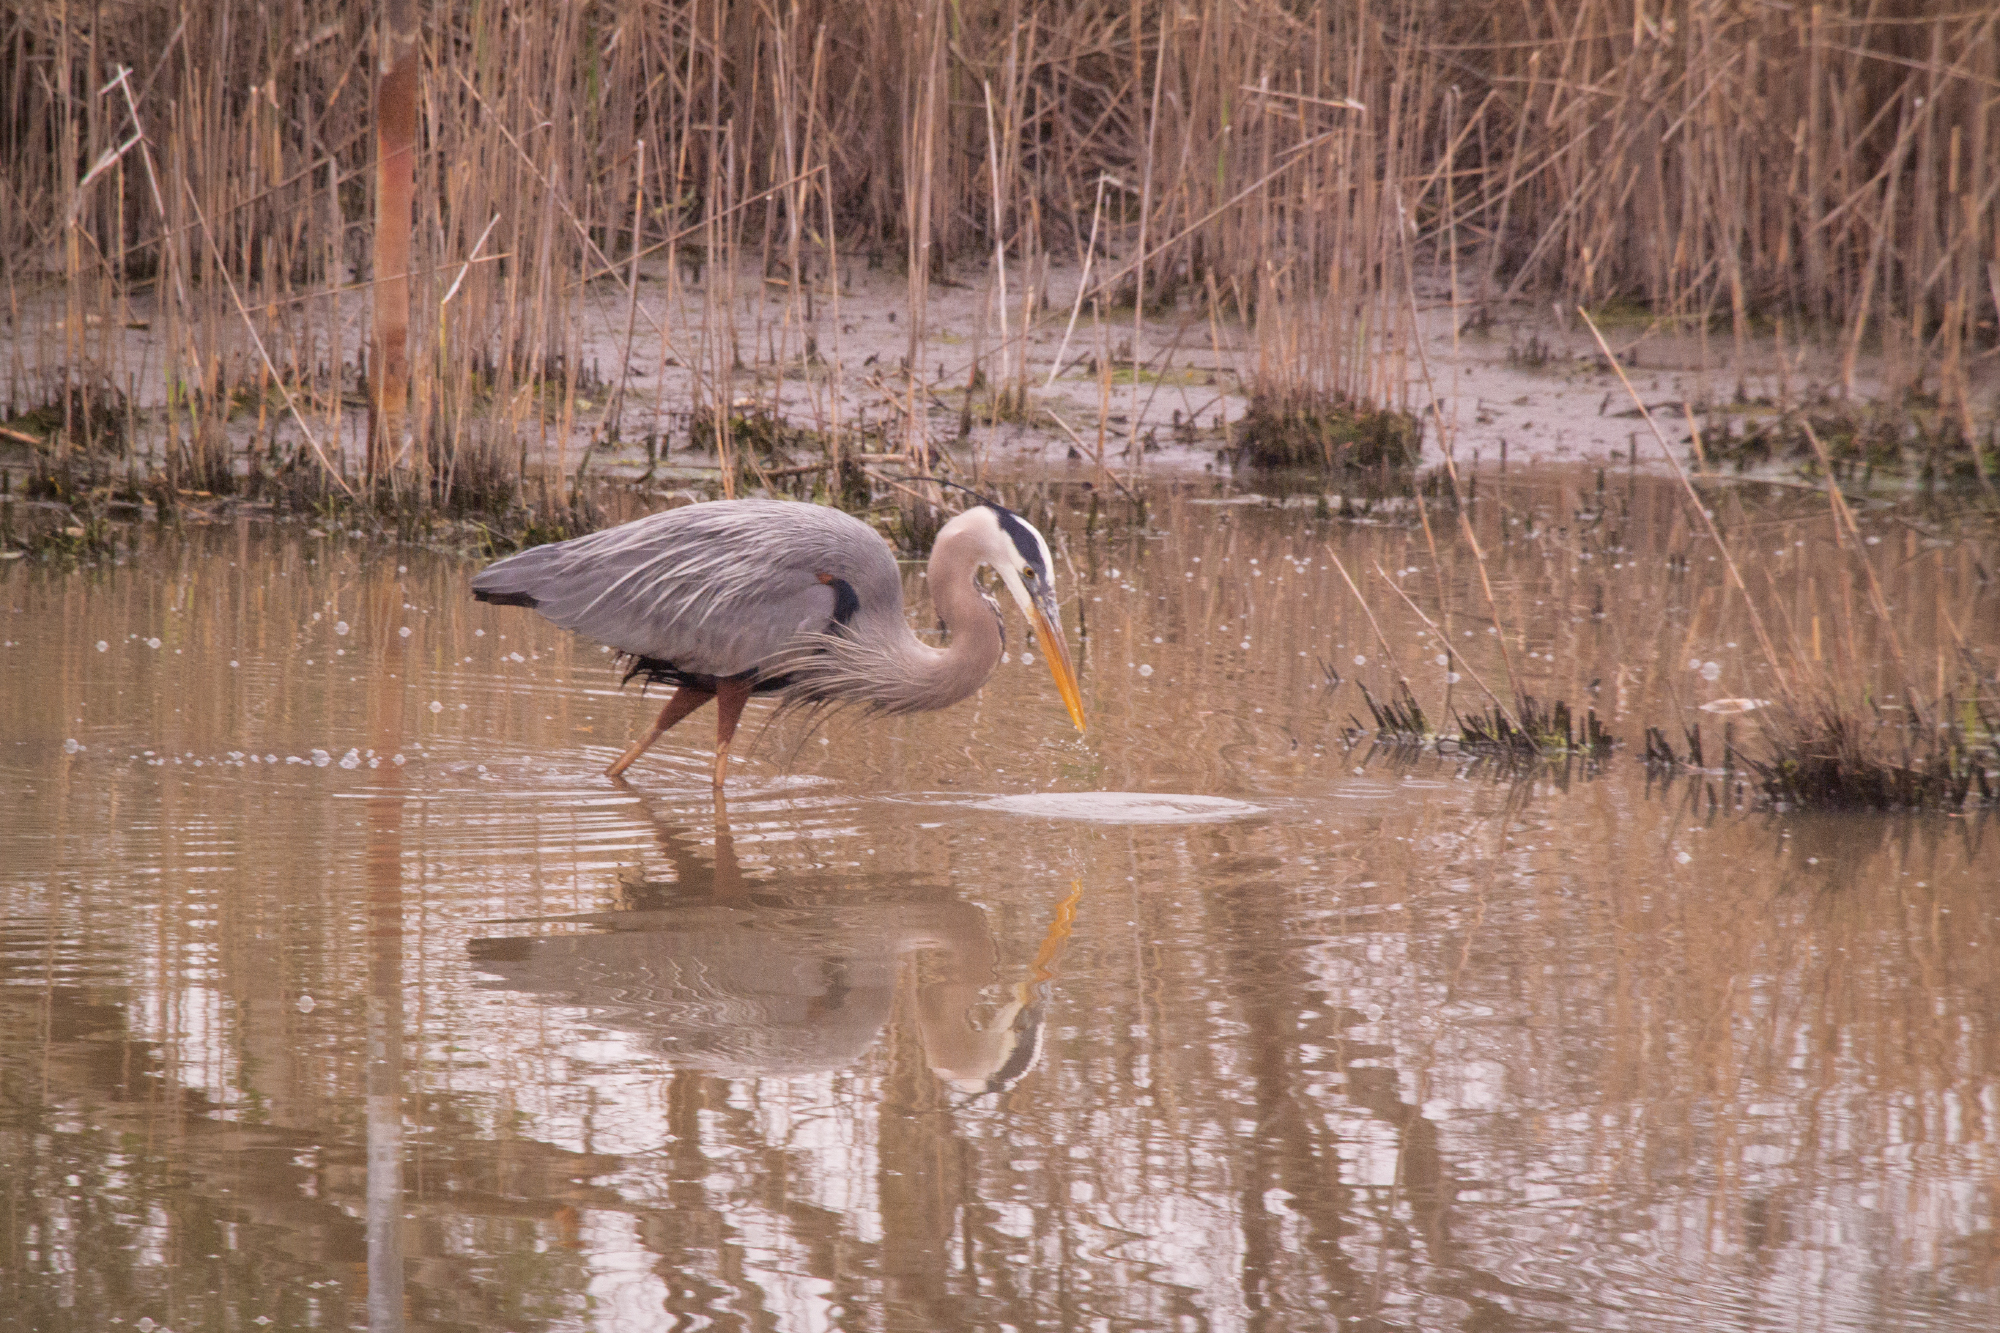 Photograph of a bird standing in water, reflecting beautifully in the water. Moody image taken in the winter in Maryland.